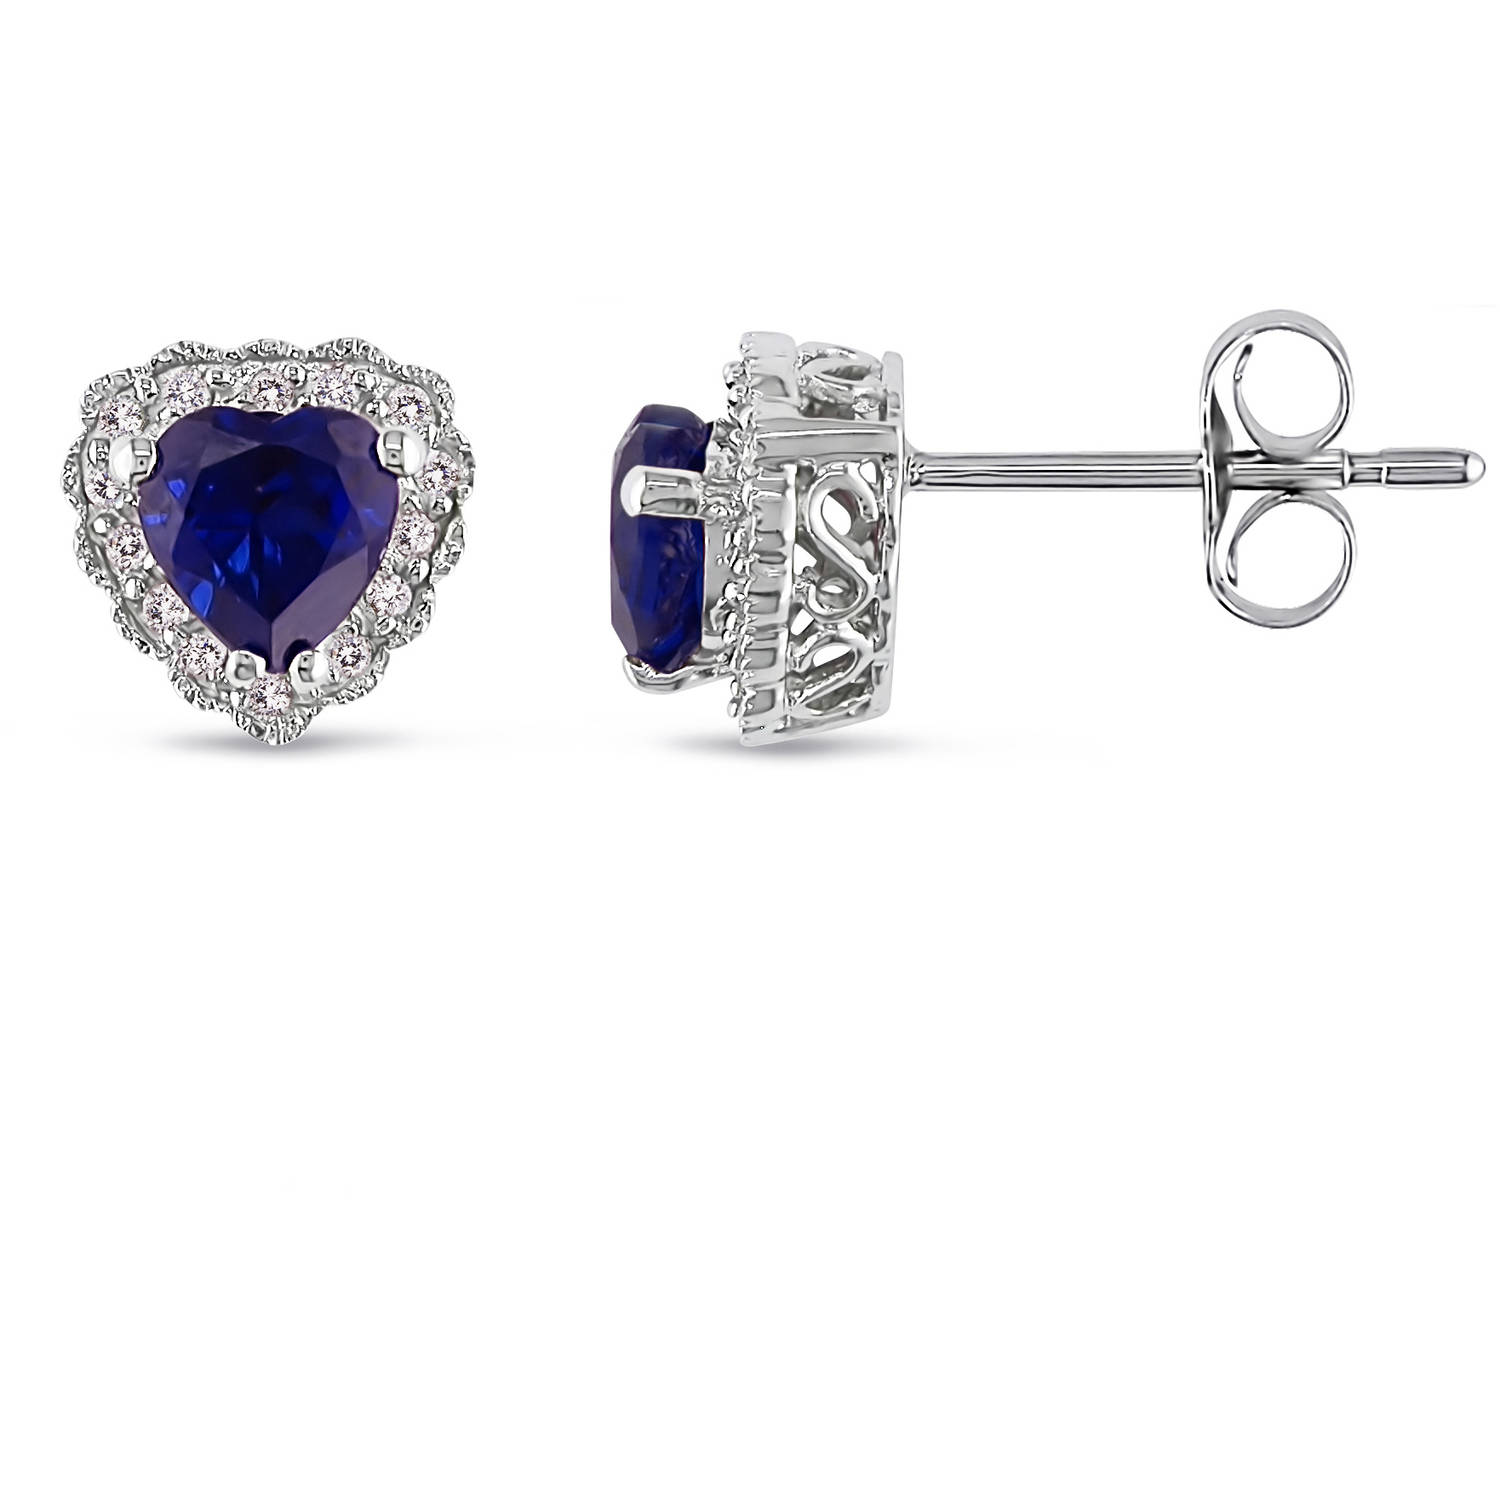 1 Carat T.G.W. Sapphire and Diamond Accent Heart Shape 10kt White Gold Stud Earrings